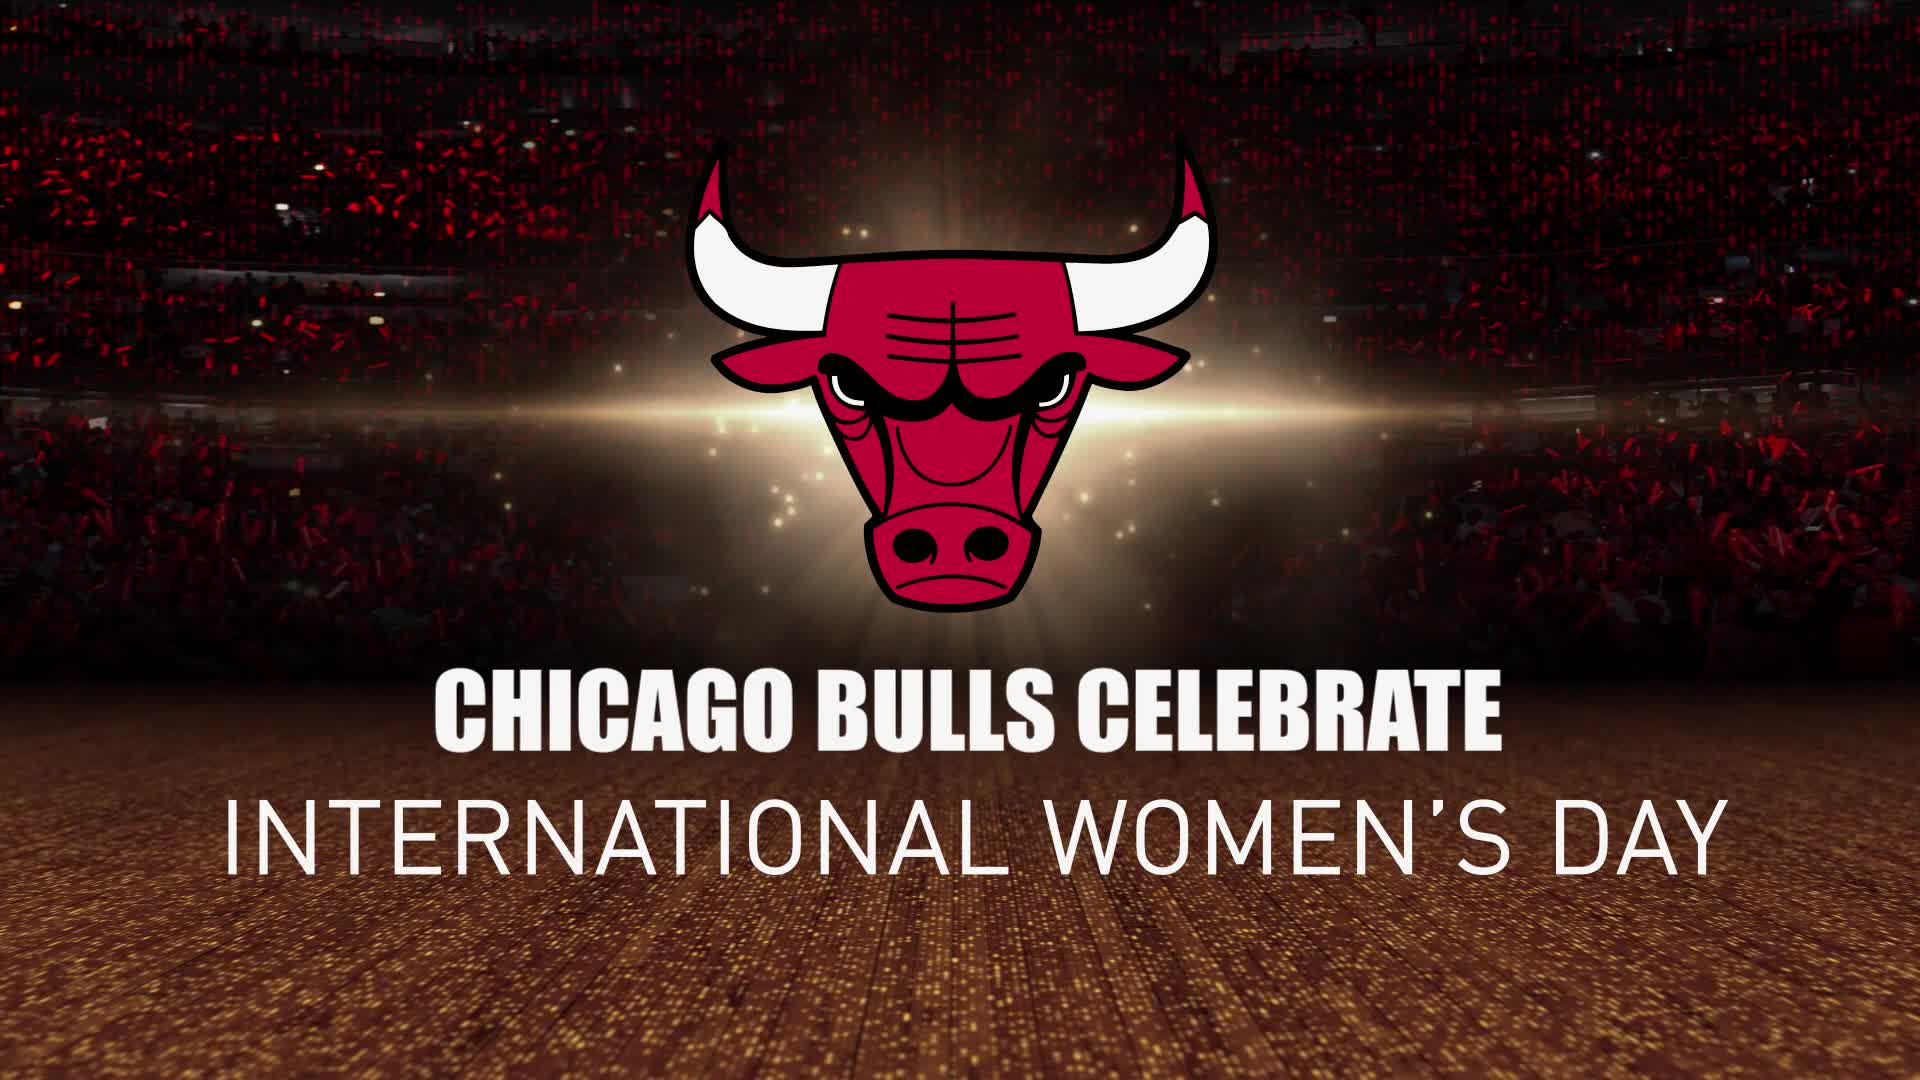 Chicago Bulls Celebrate International Women's Day